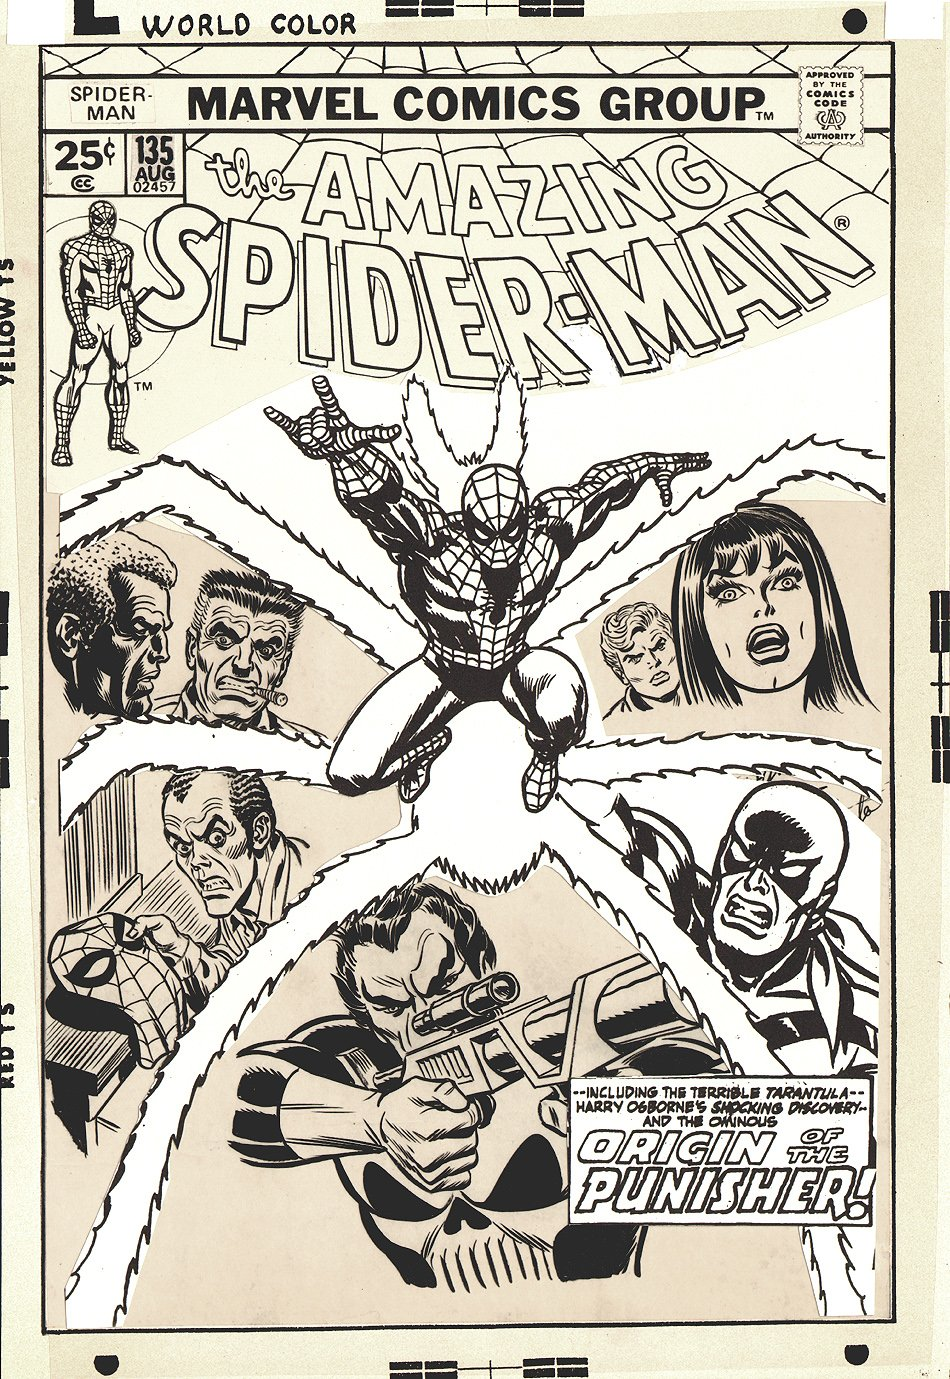 Amazing Spider-Man 135 Cover SOLD SOLD SOLD!